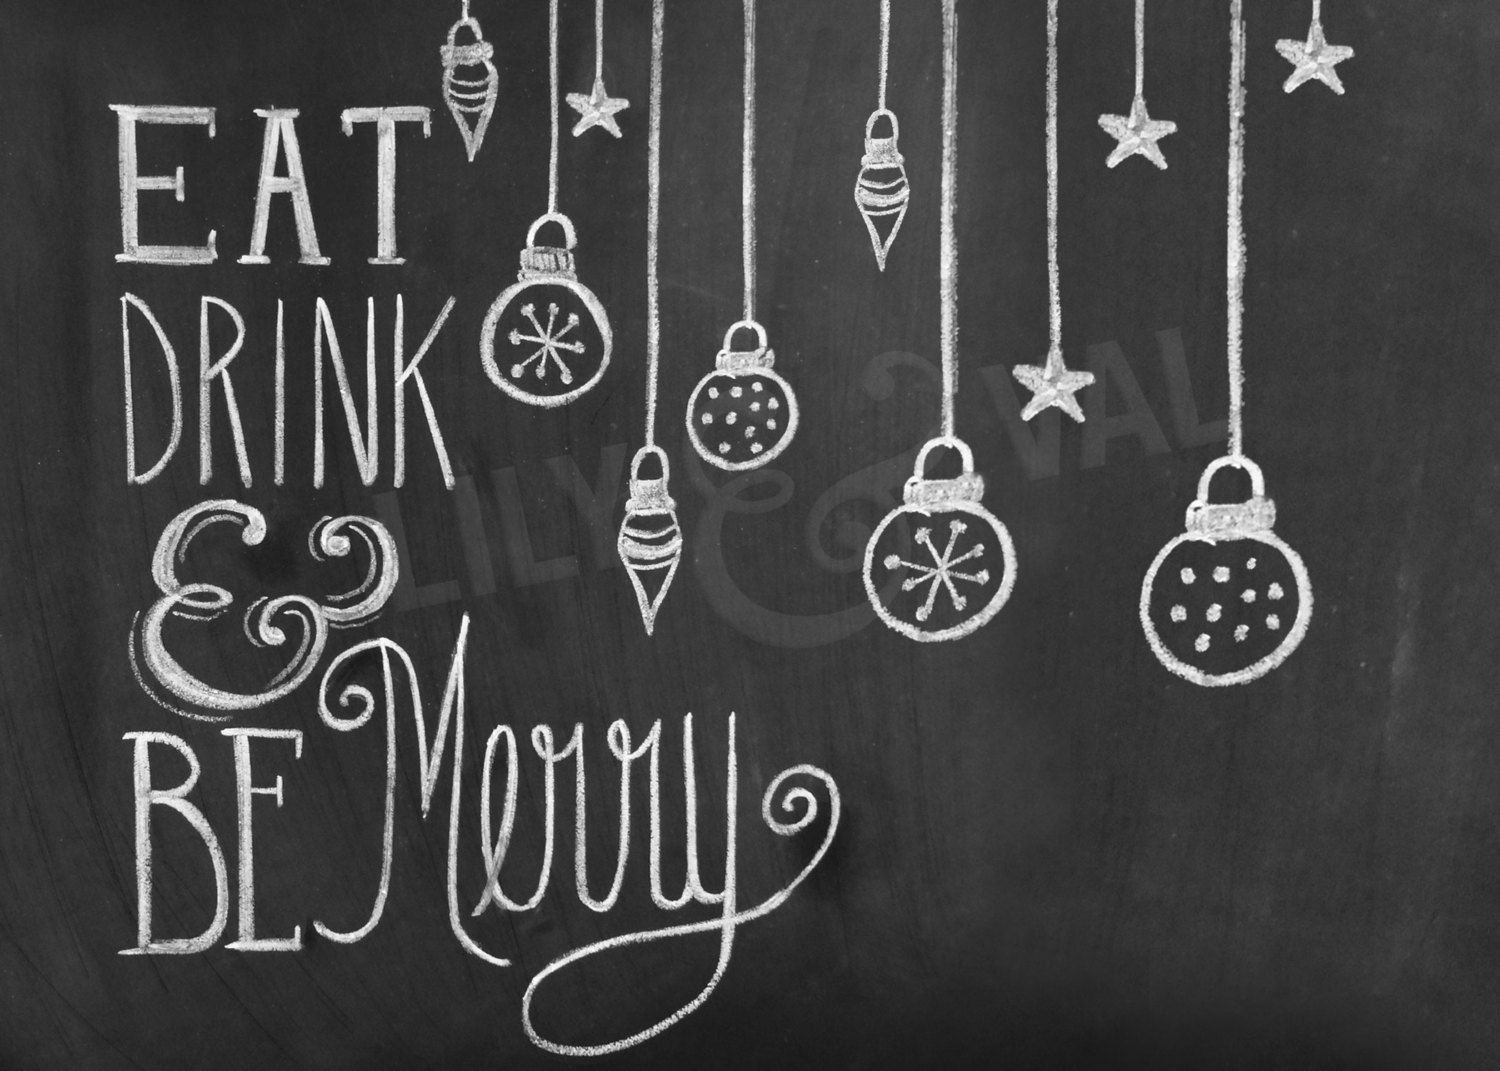 Eat Drink And Be Merry From Lilyandval Christmas Chalkboard Christmas Chalkboard Art Chalkboard Christmas Card